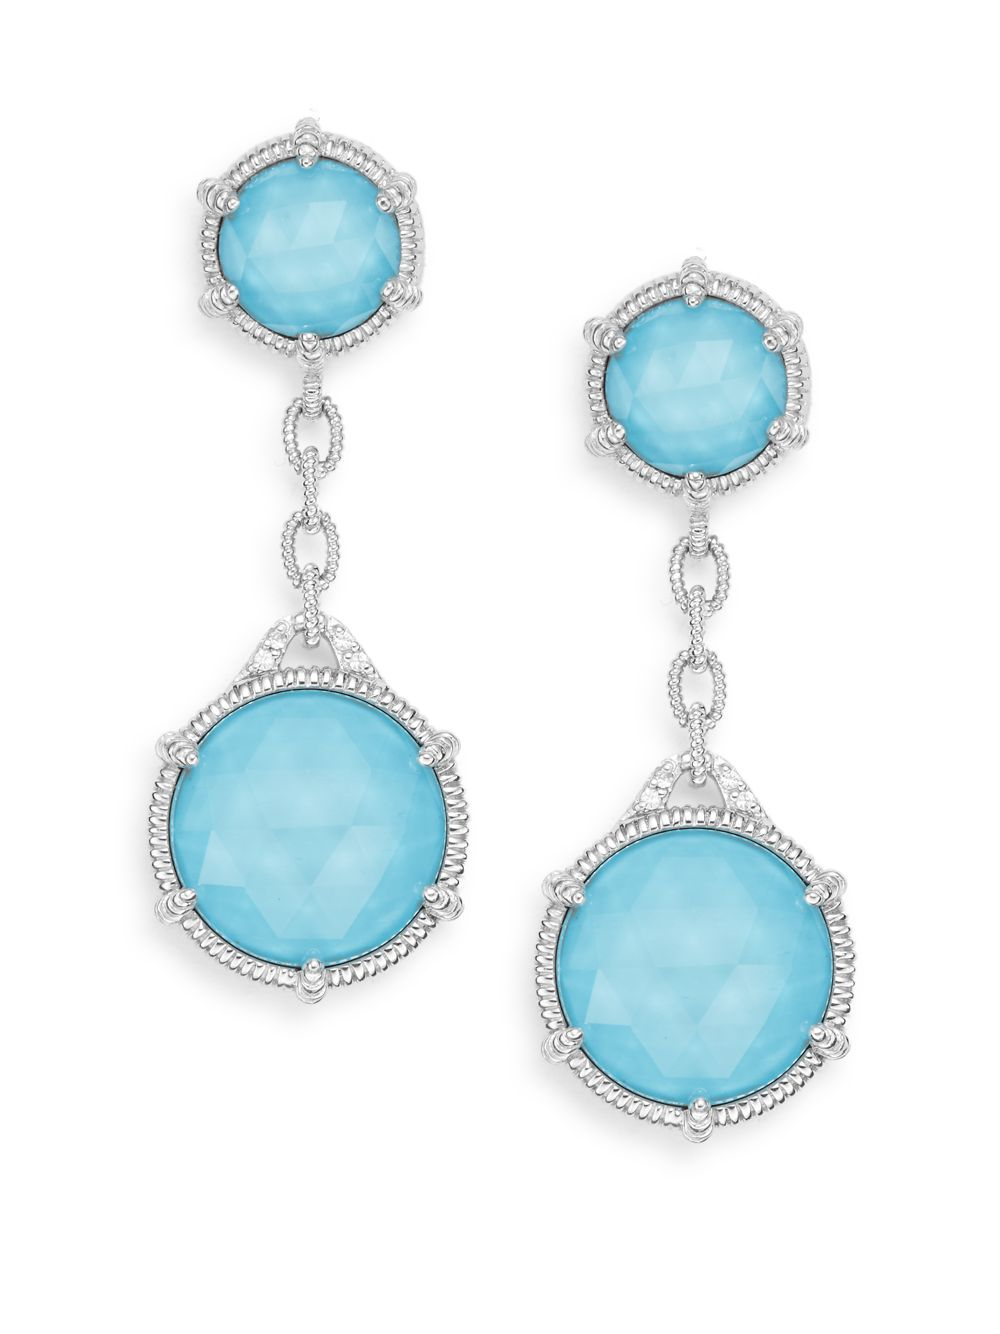 fbffe7935 Judith Ripka Eclipse Turquoise, White Sappire & Sterling Silver ...